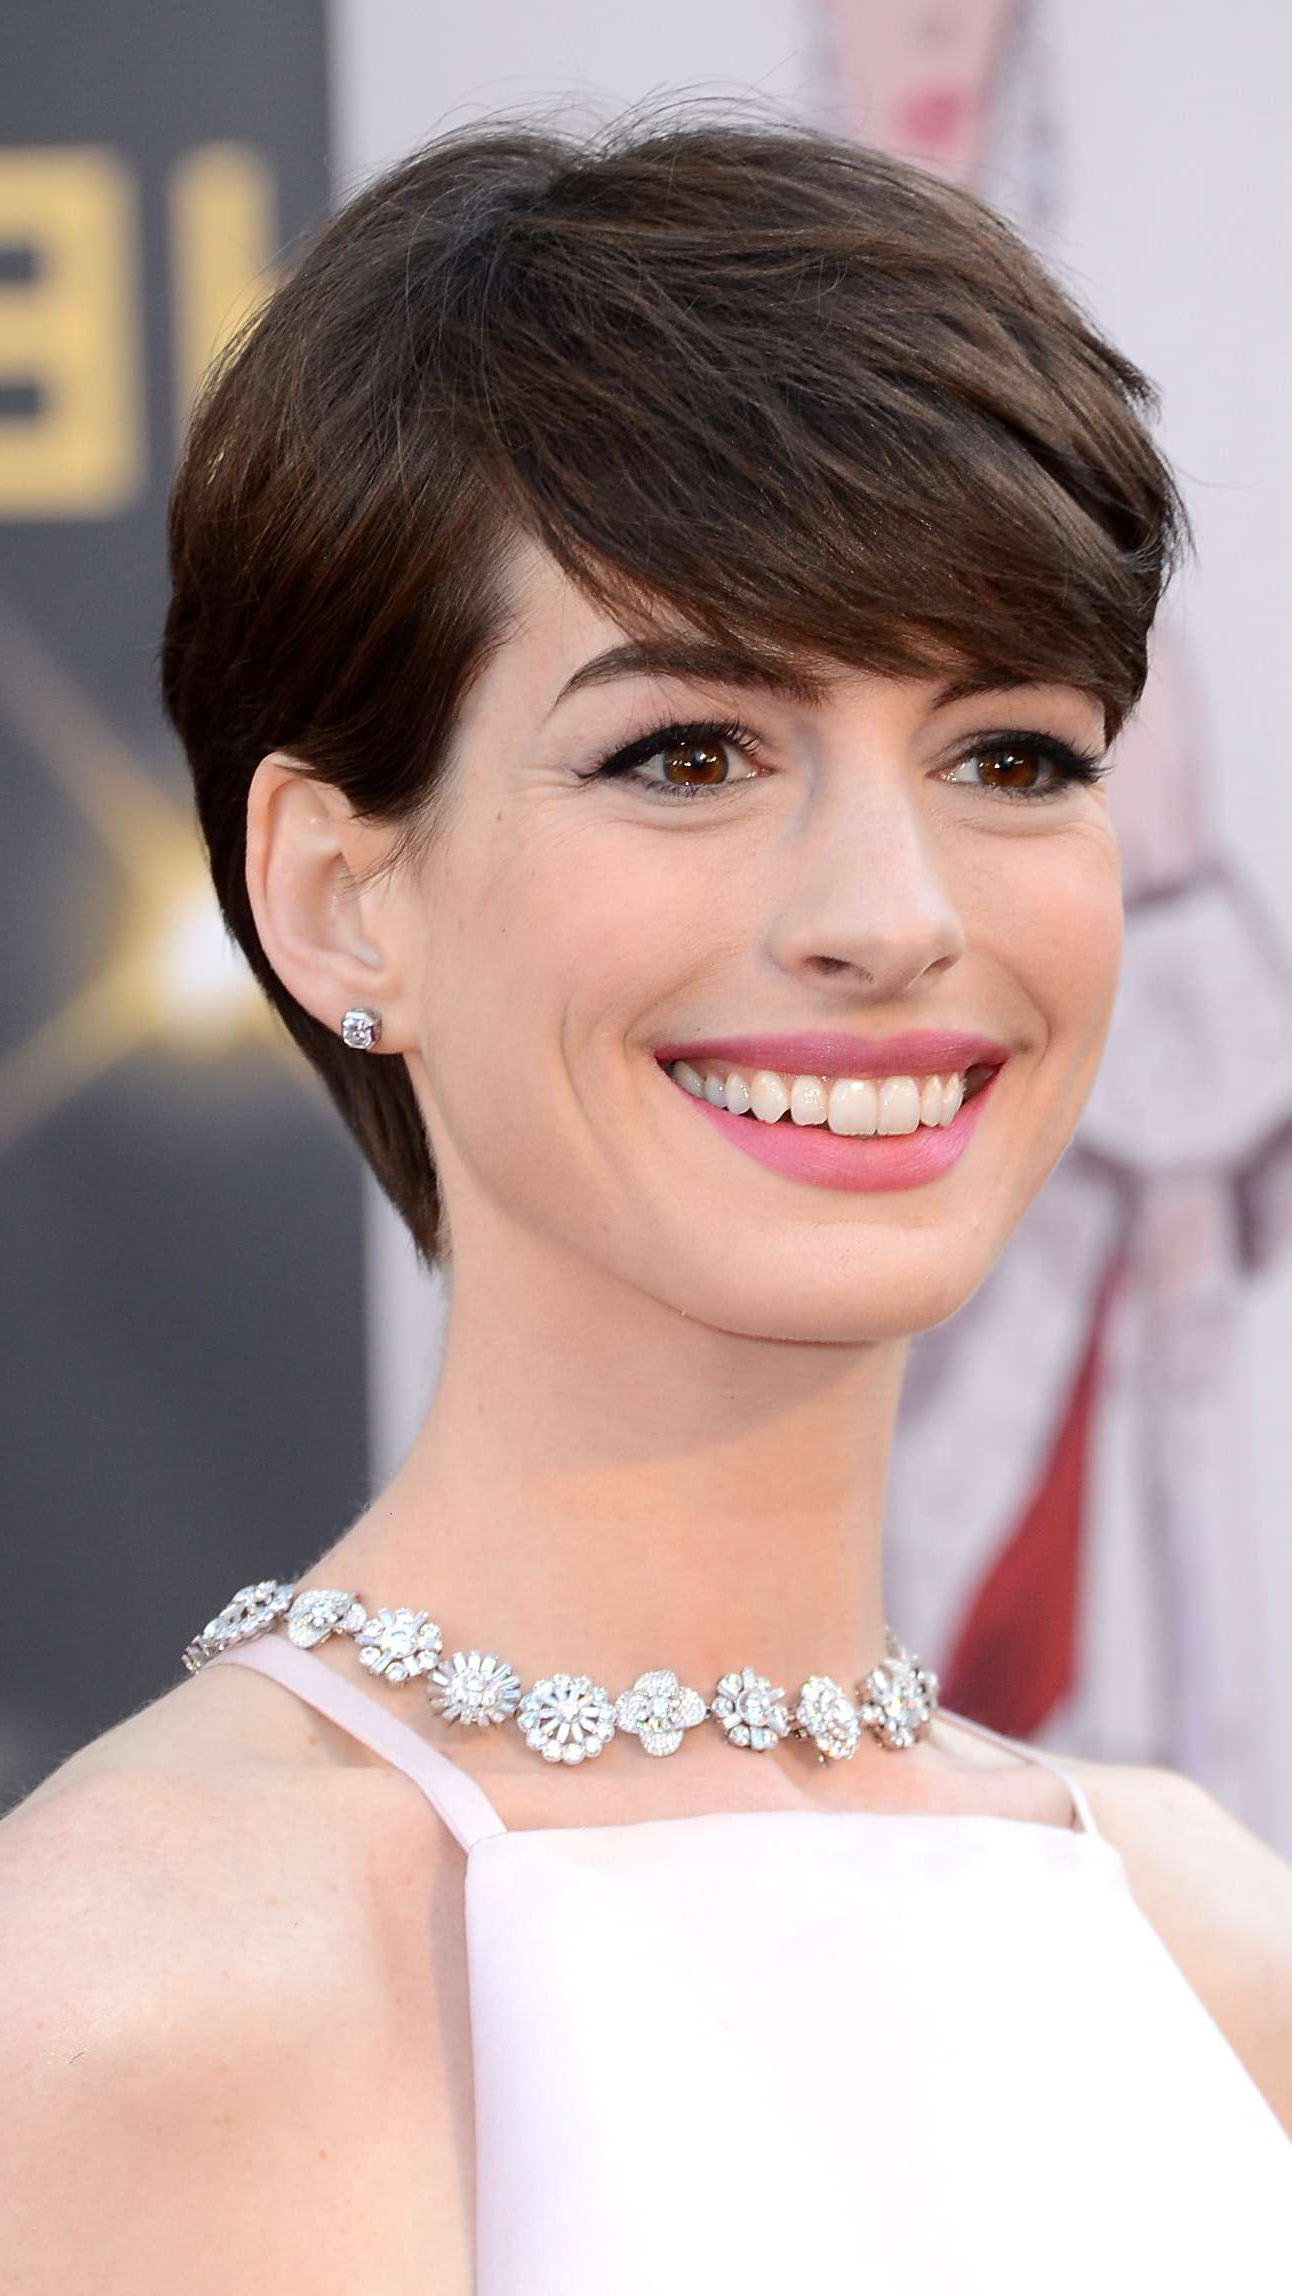 22 Inspiring Short Haircuts For Every Face Shape Inside Short Hairstyles For Oval Face Thick Hair (View 20 of 25)